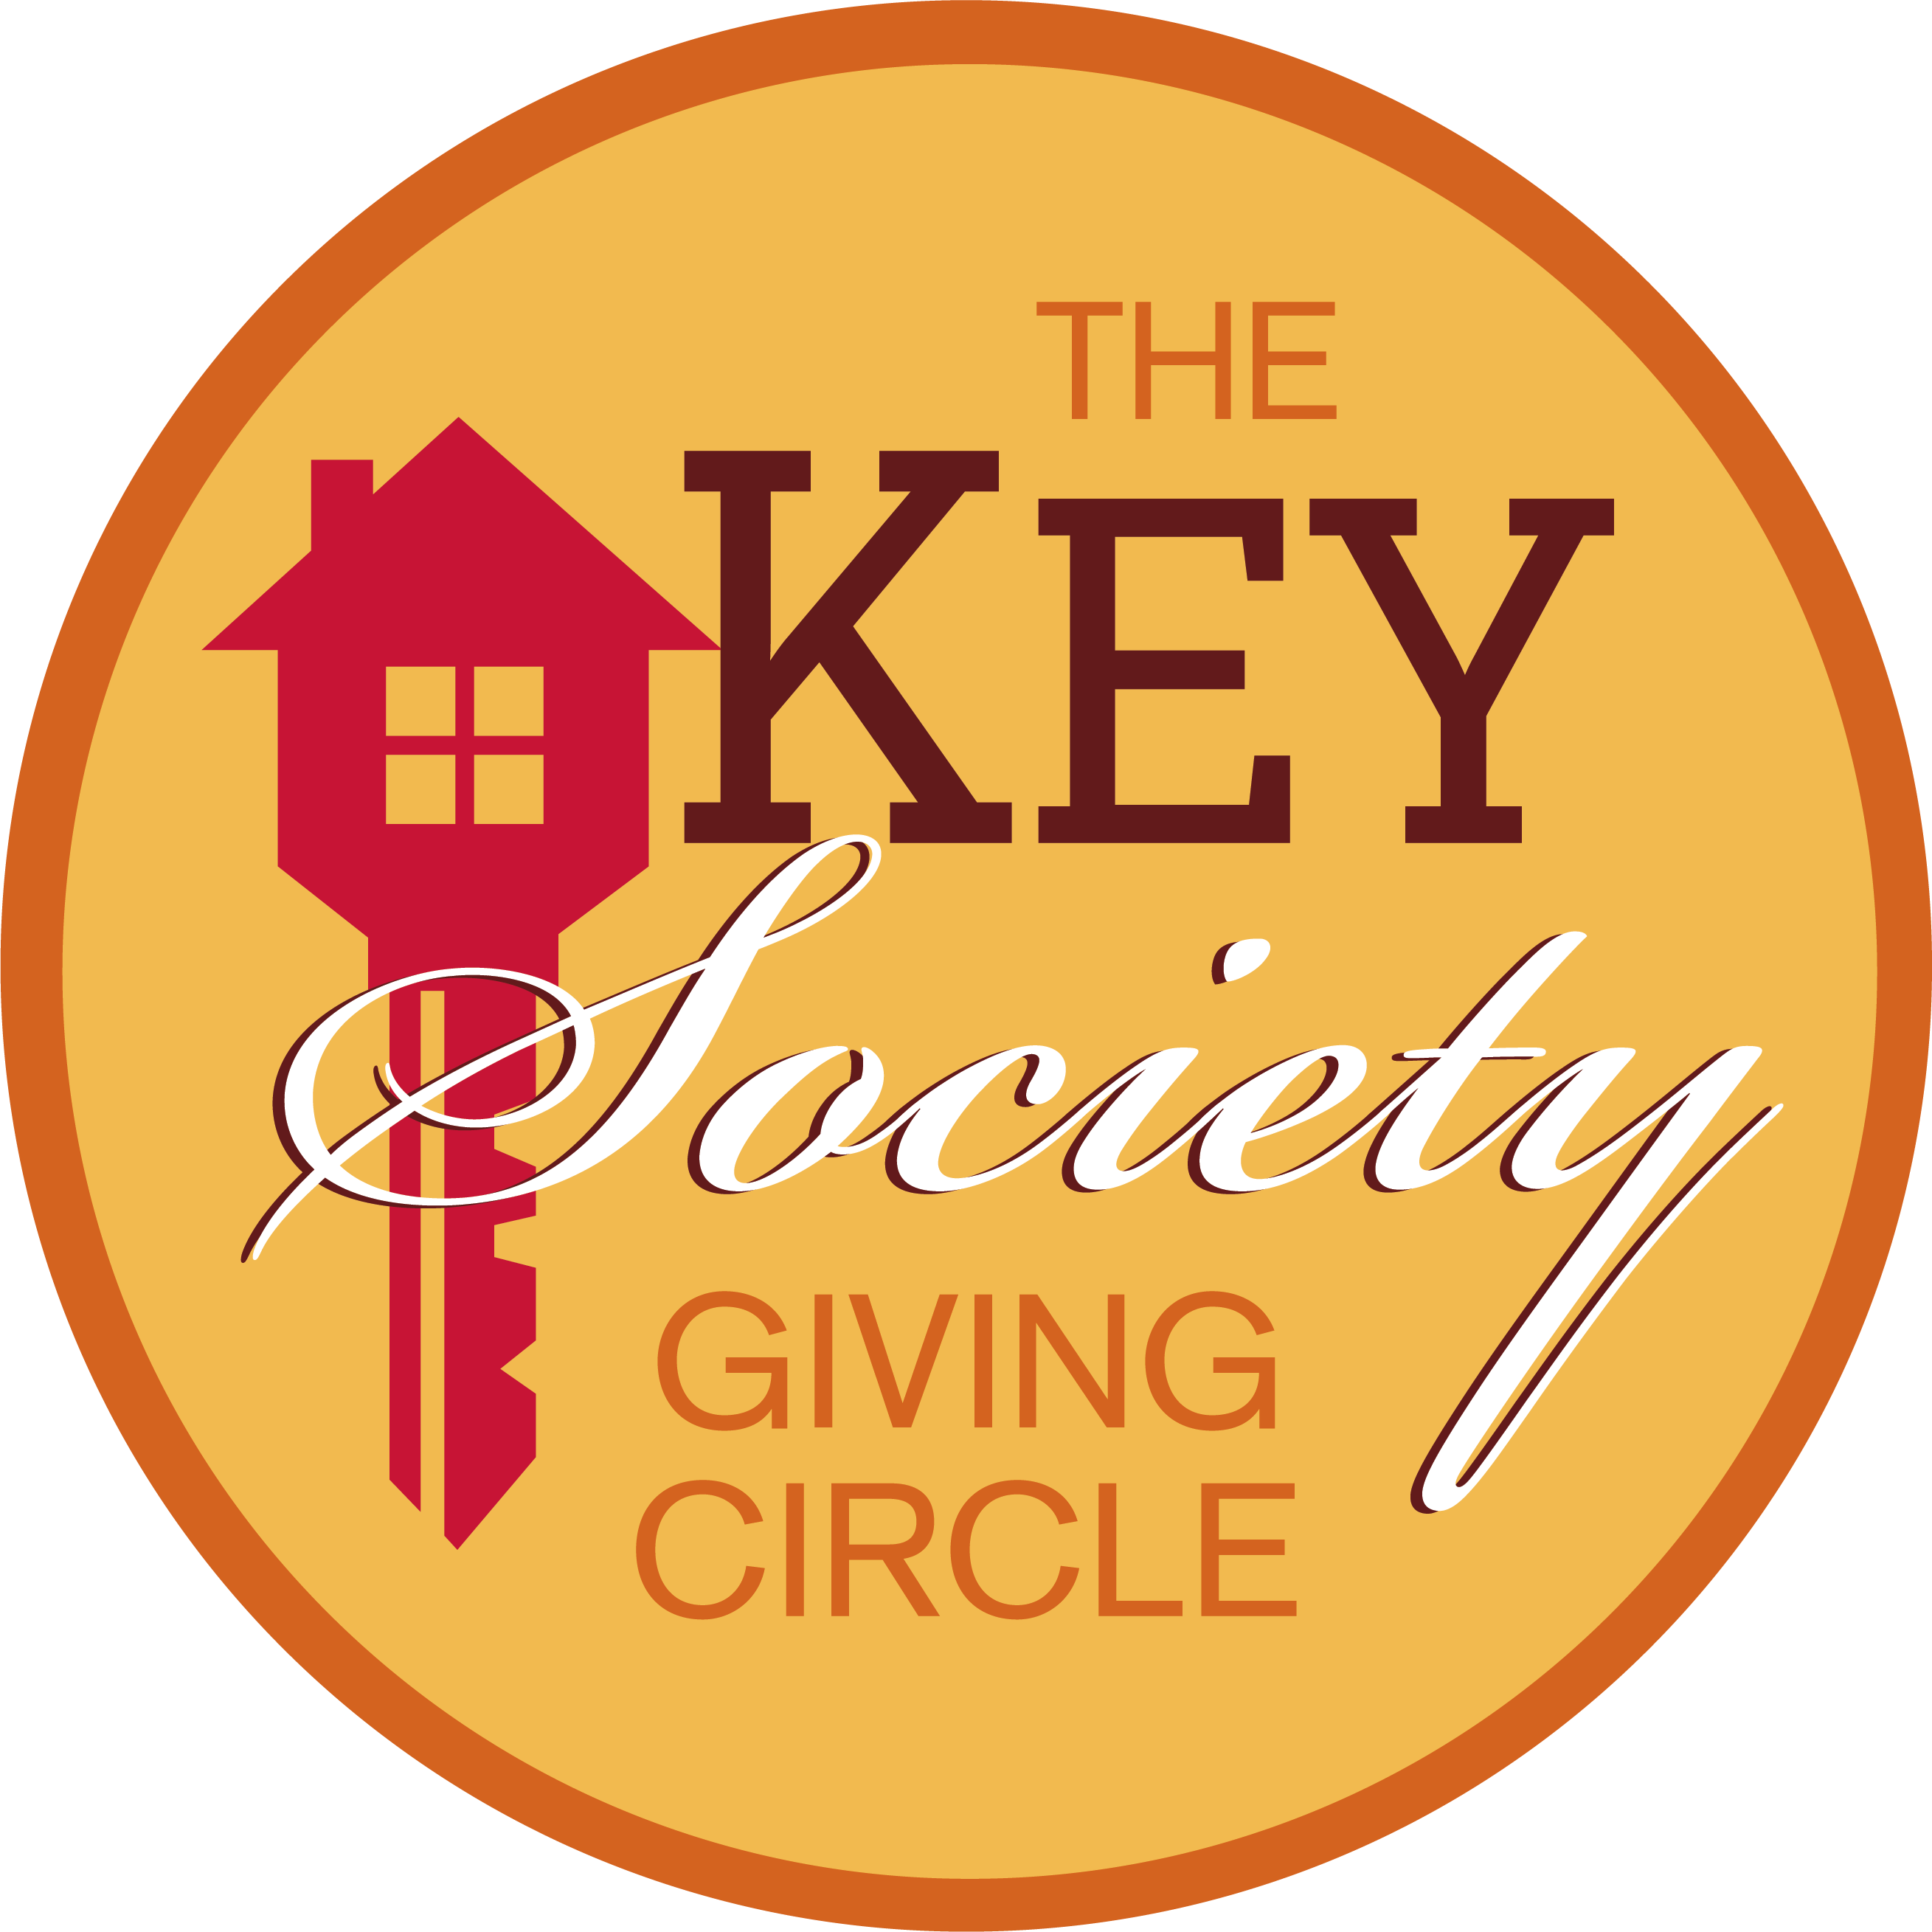 Donate Key Society